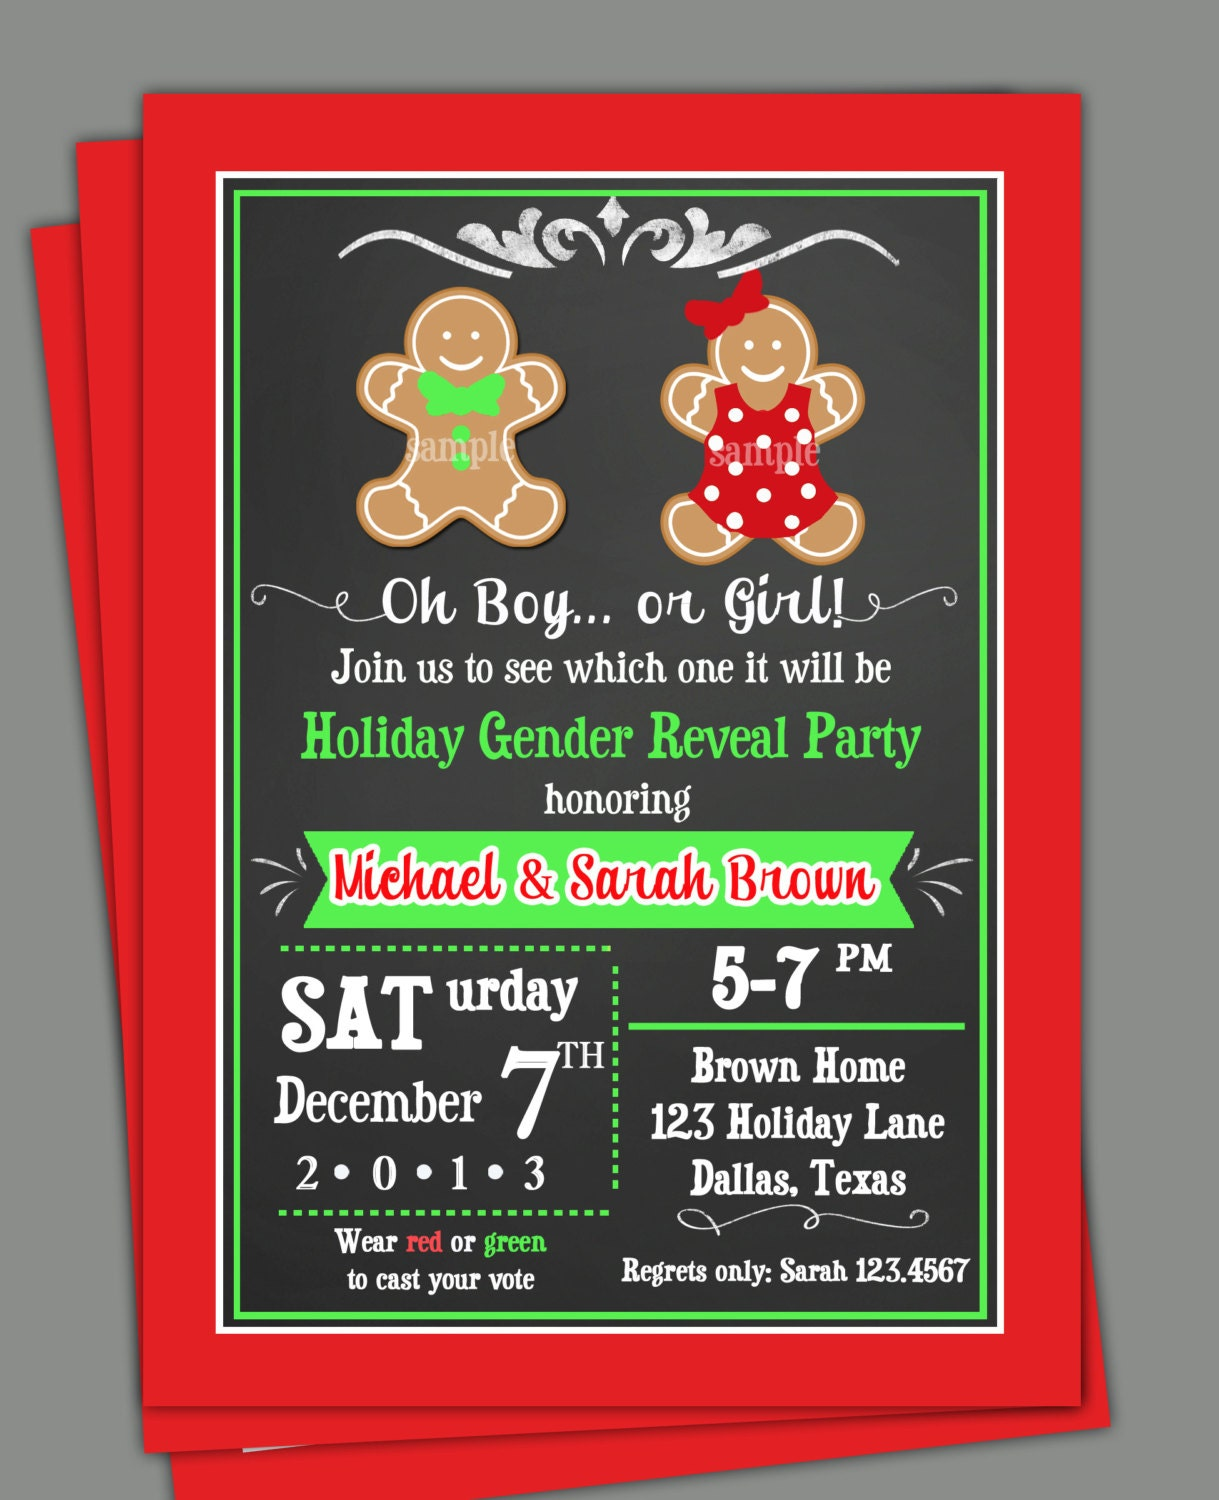 Twin Baby Shower Invitations is good invitations layout